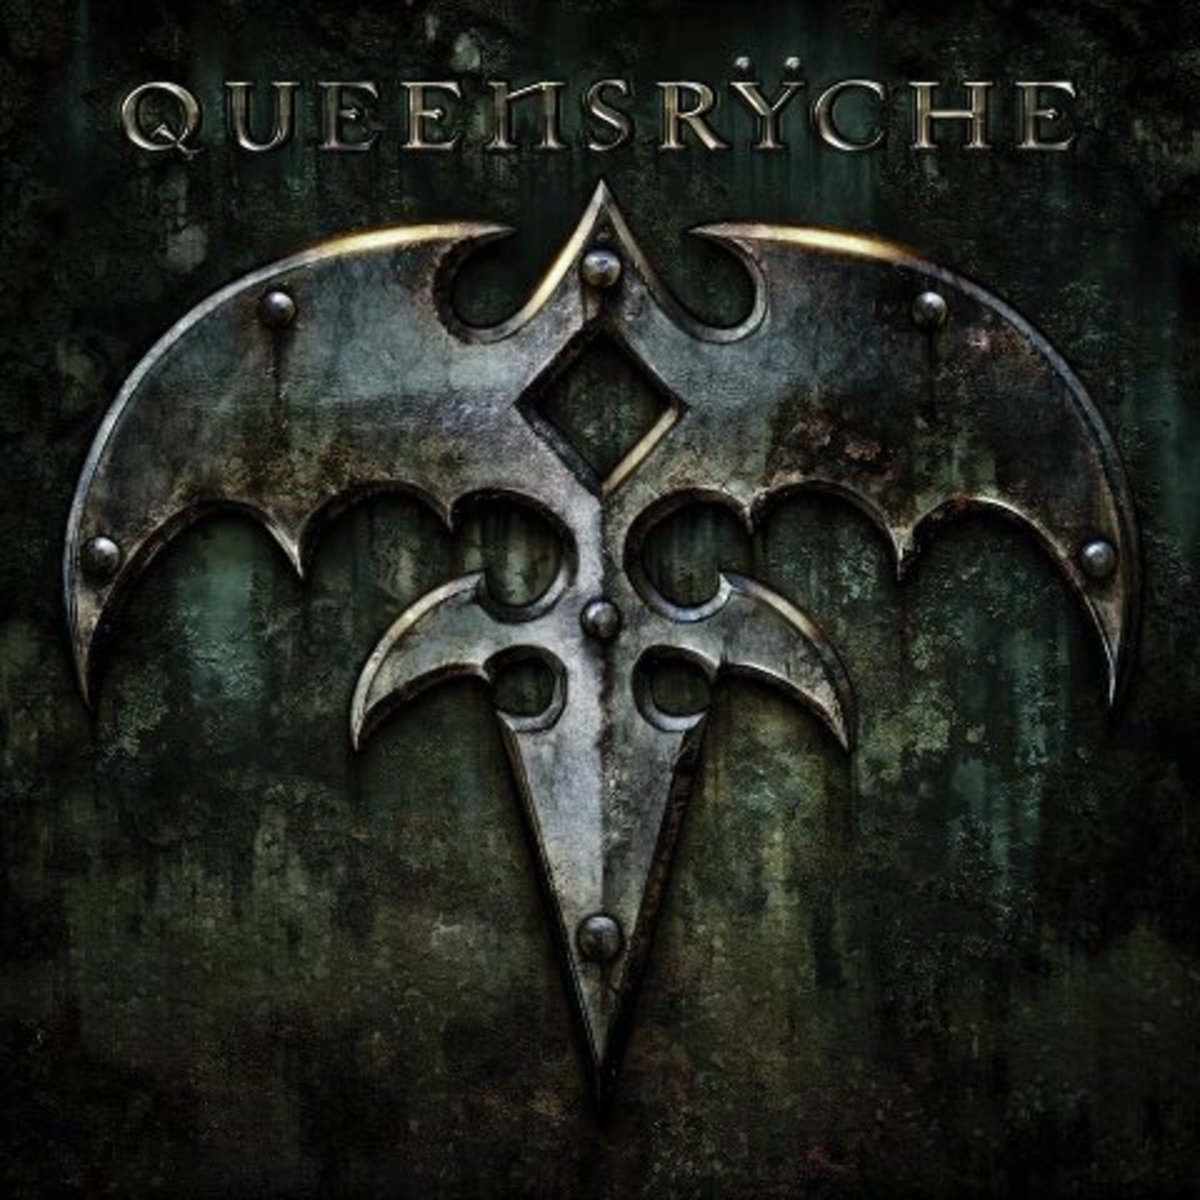 """Queensrÿche"" self titled album cover"